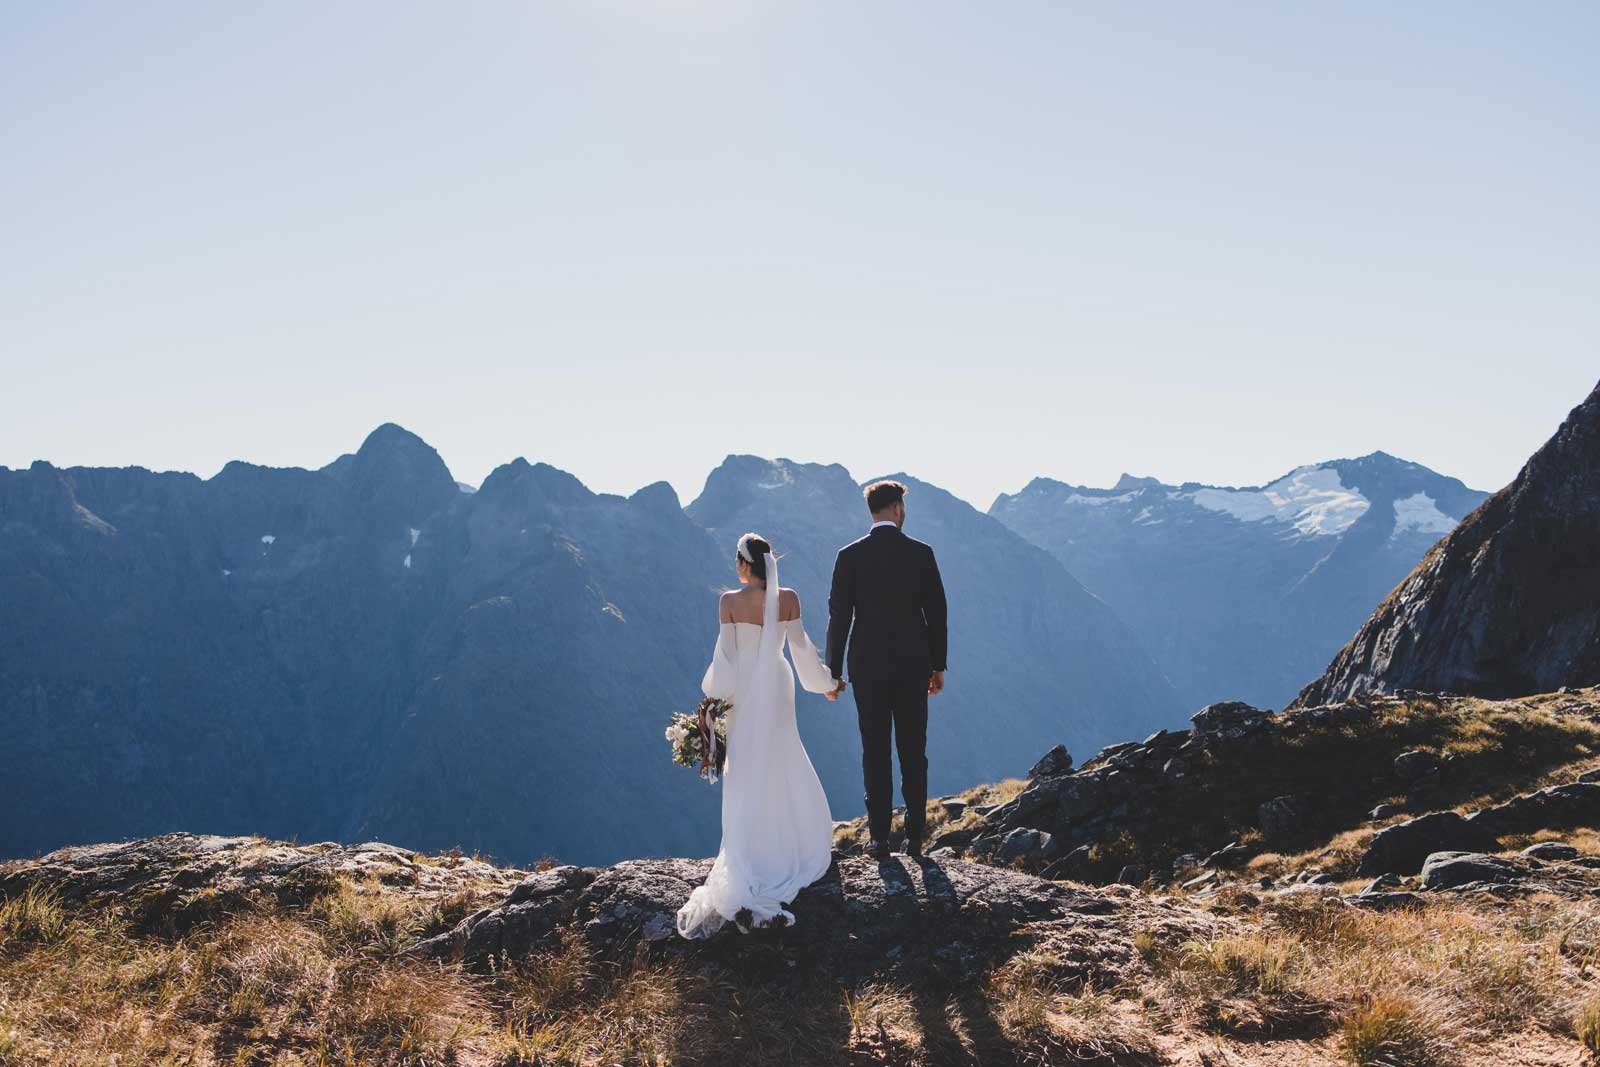 04 Bride And Groom Mountainscape